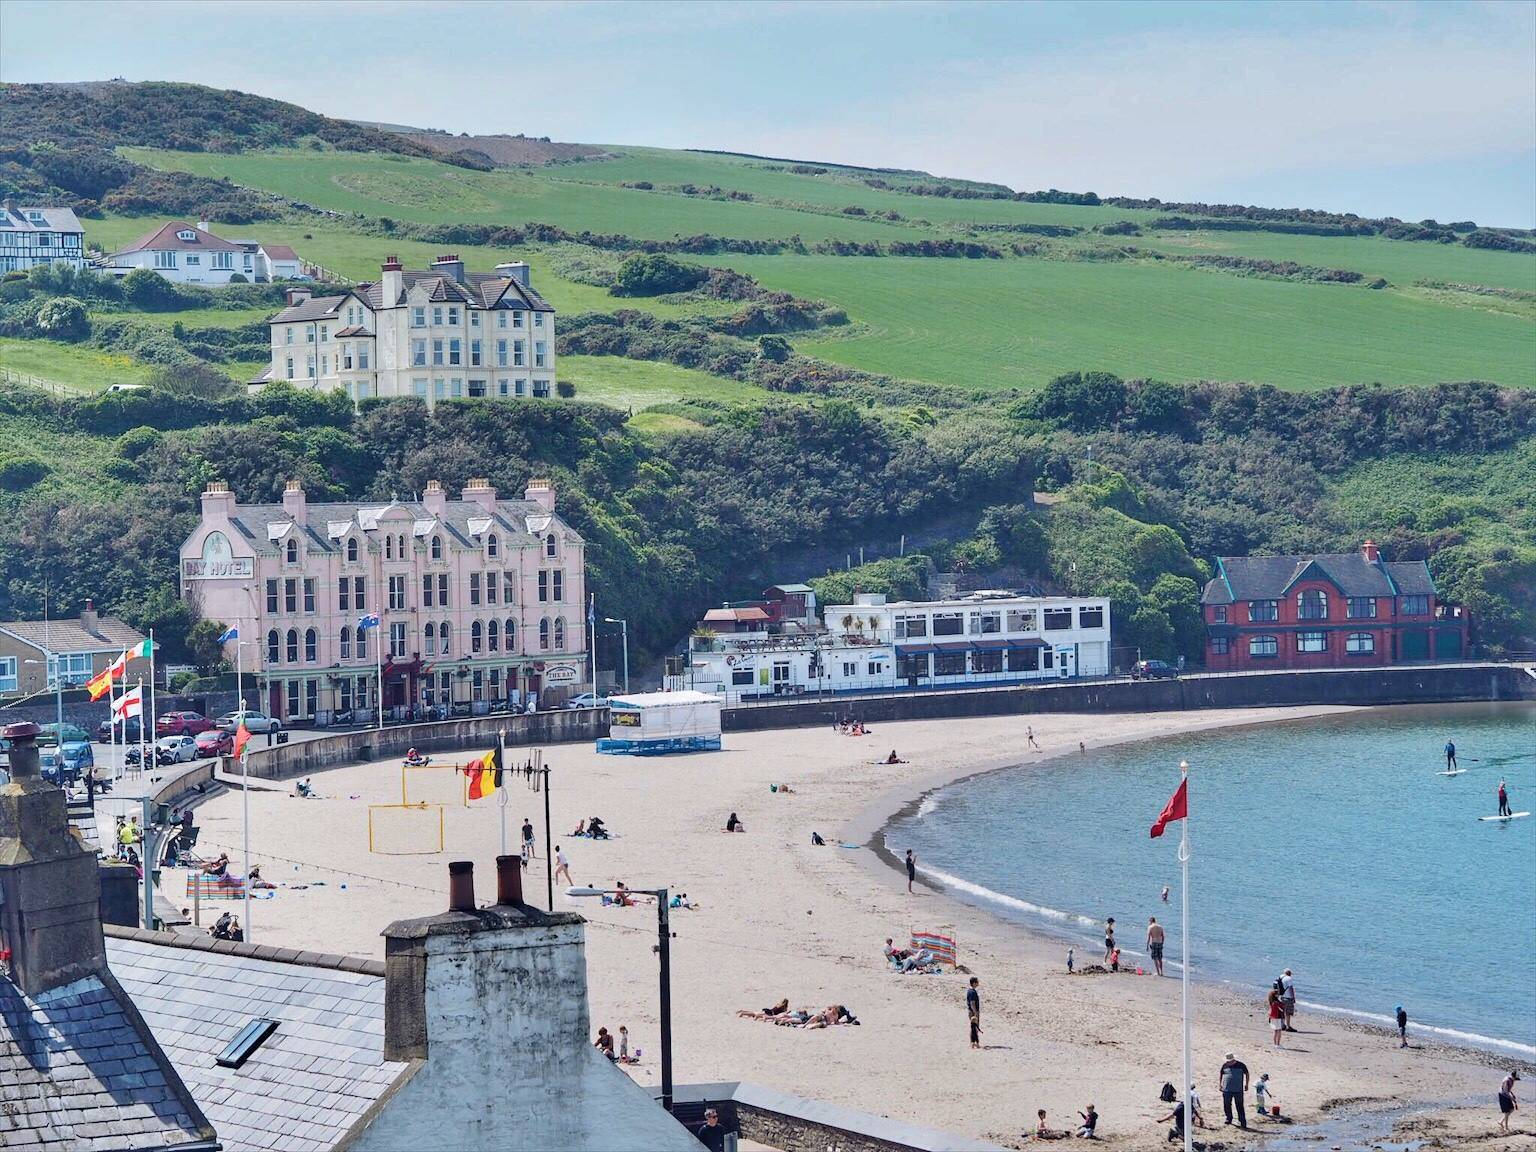 33c4638f0f 42 Cheap & Unique Things To Do In Isle of Man - While I'm Young